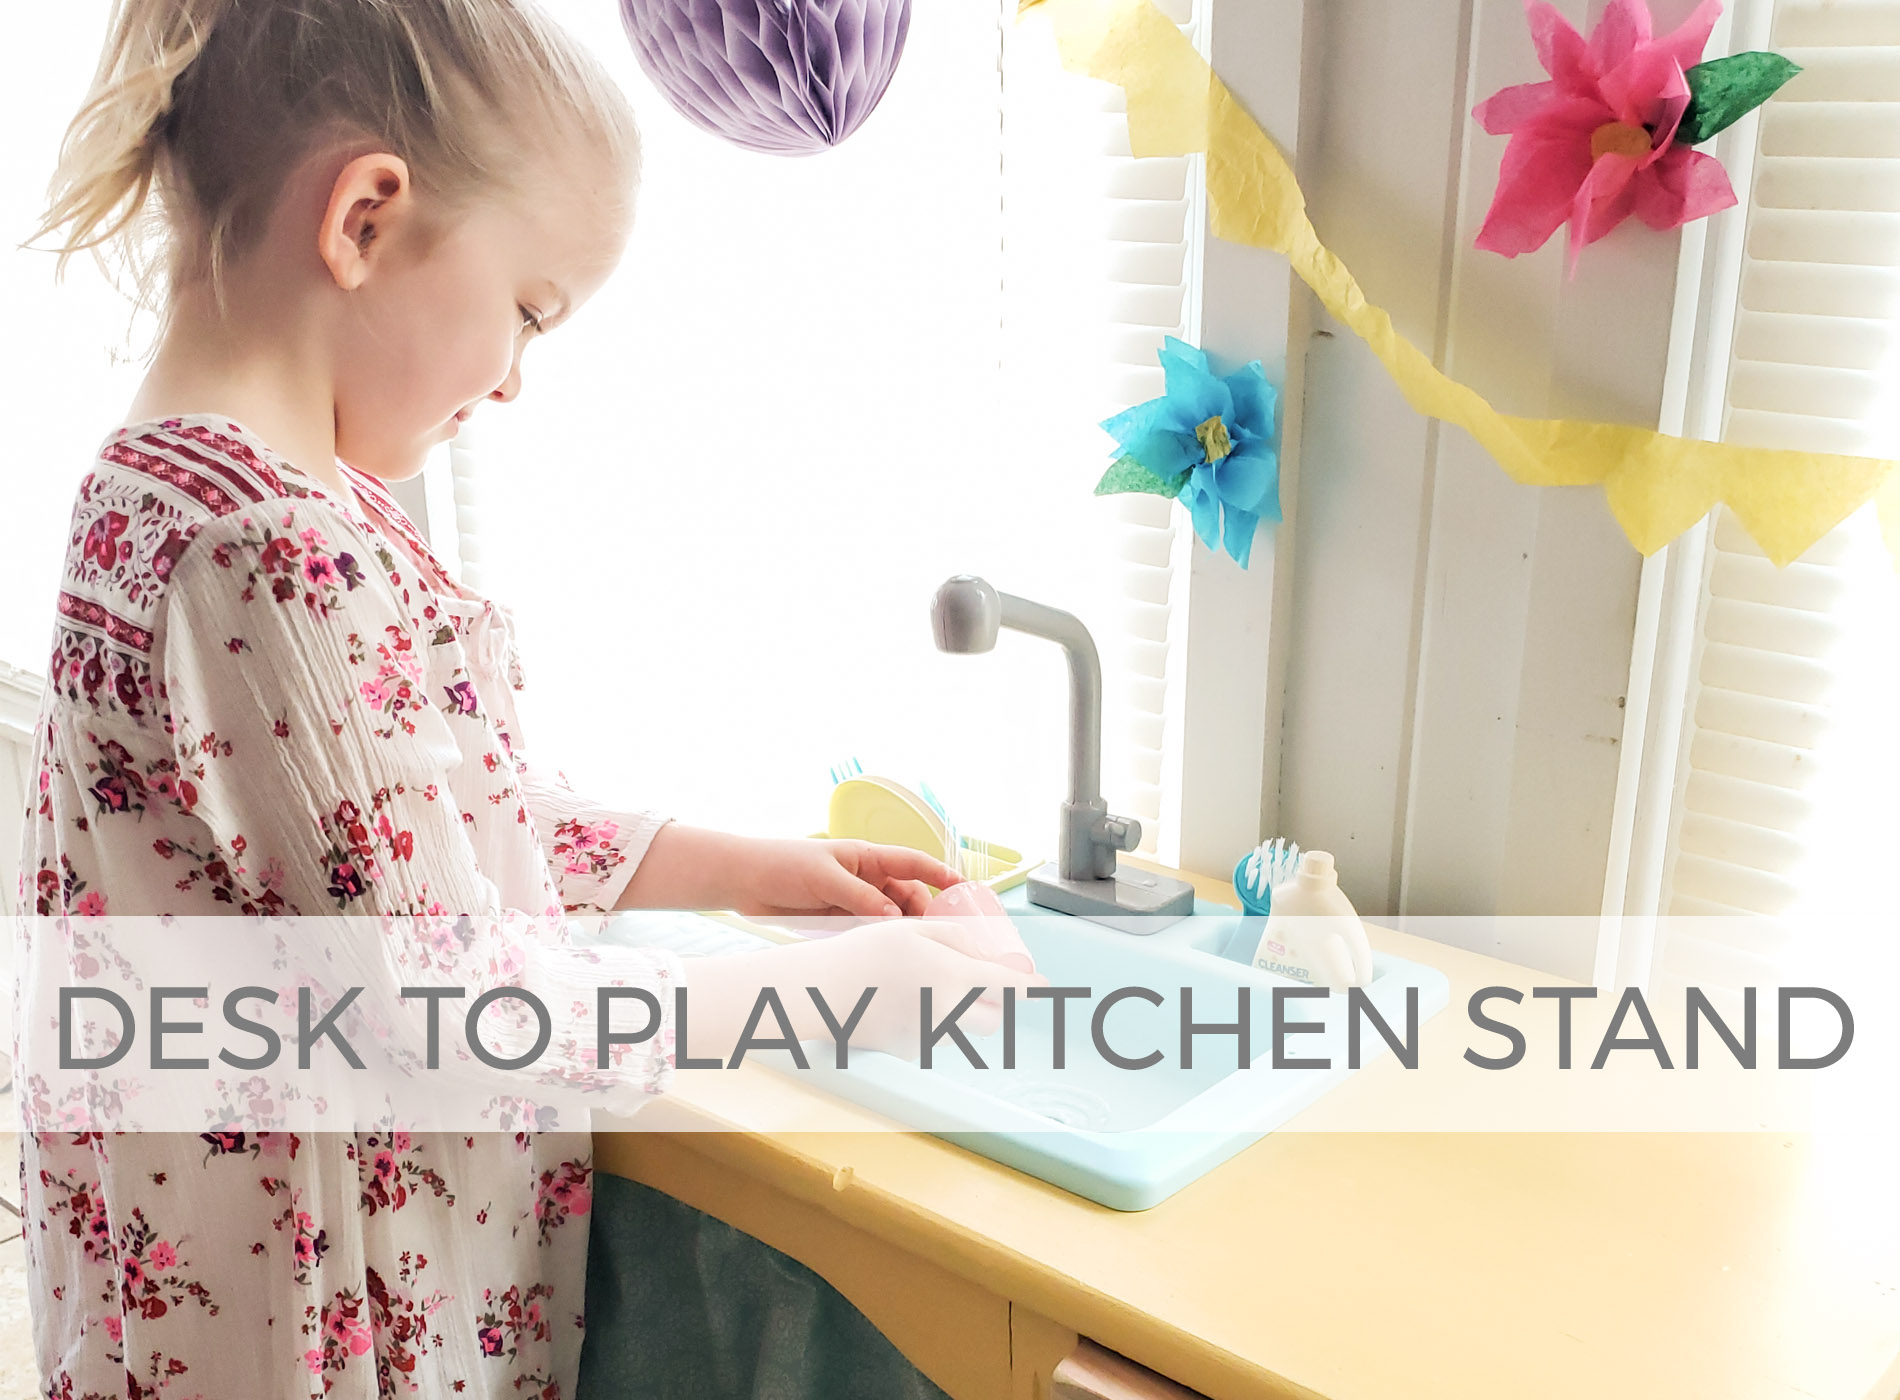 Play Kitchen Stand from Upcycled Desk by Larissa of Prodigal Pieces | prodigalpieces.com